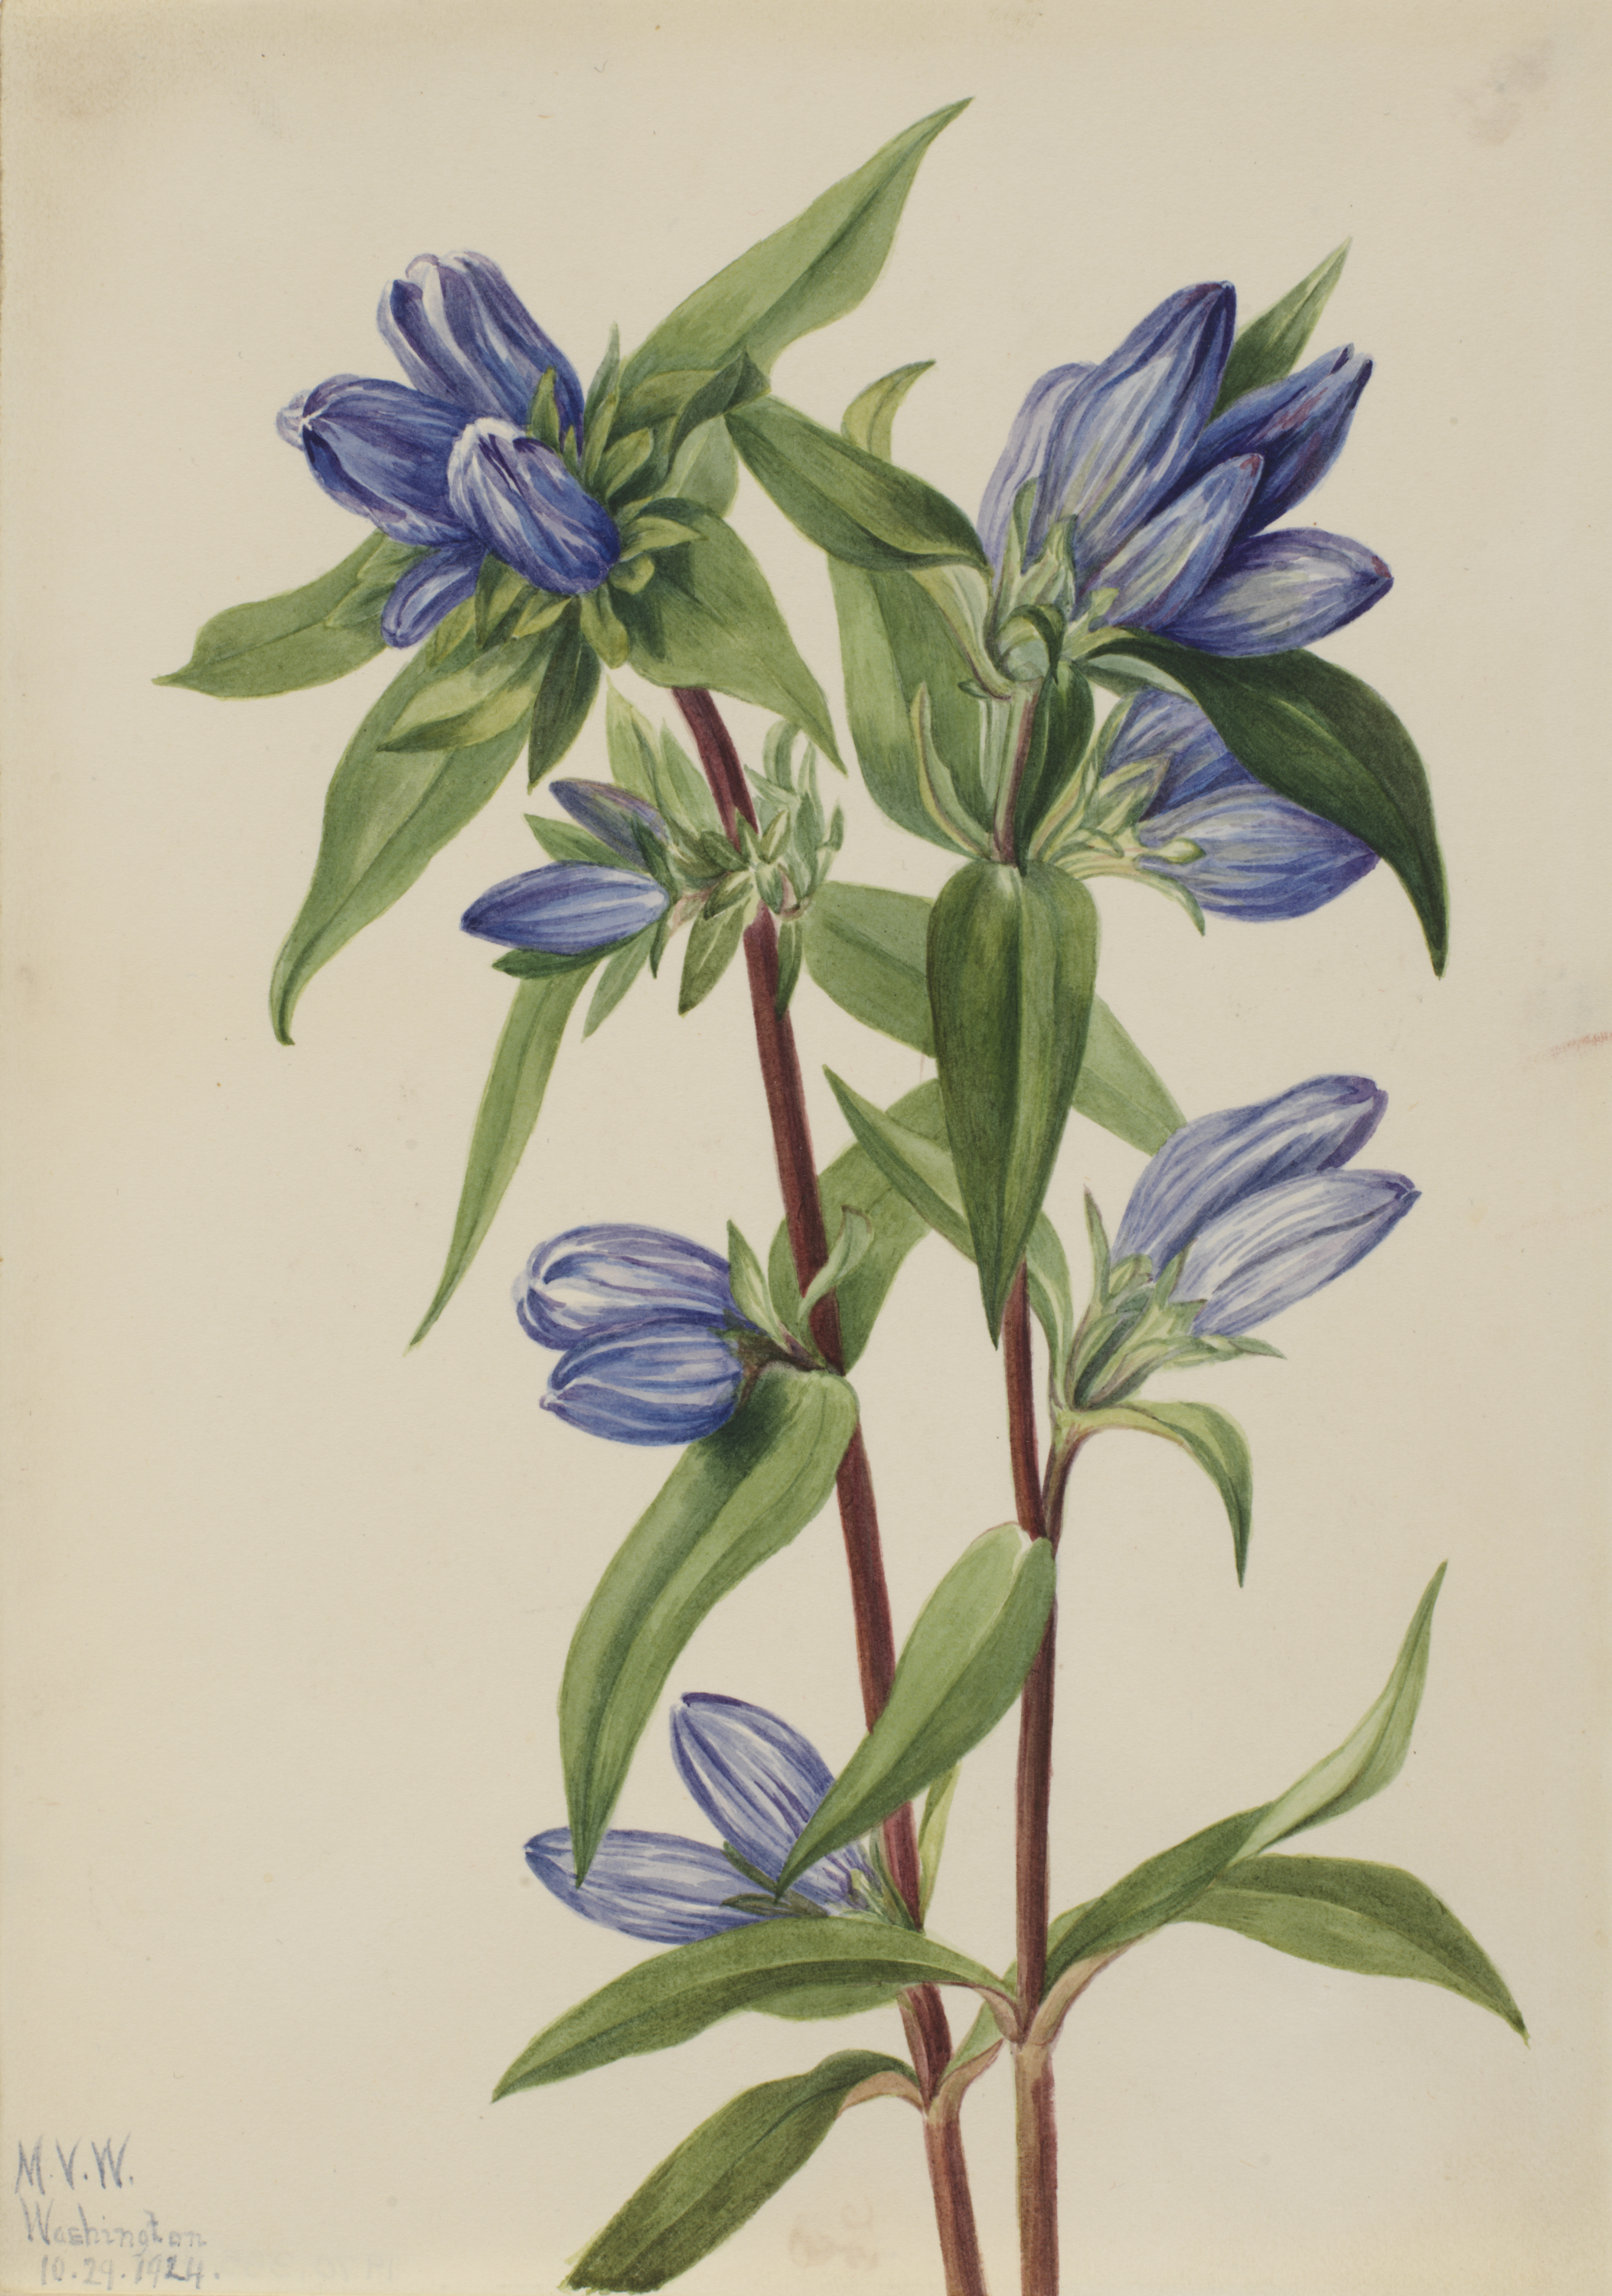 1924 Closed Gentian illustration by Mary Vaux Walcott.